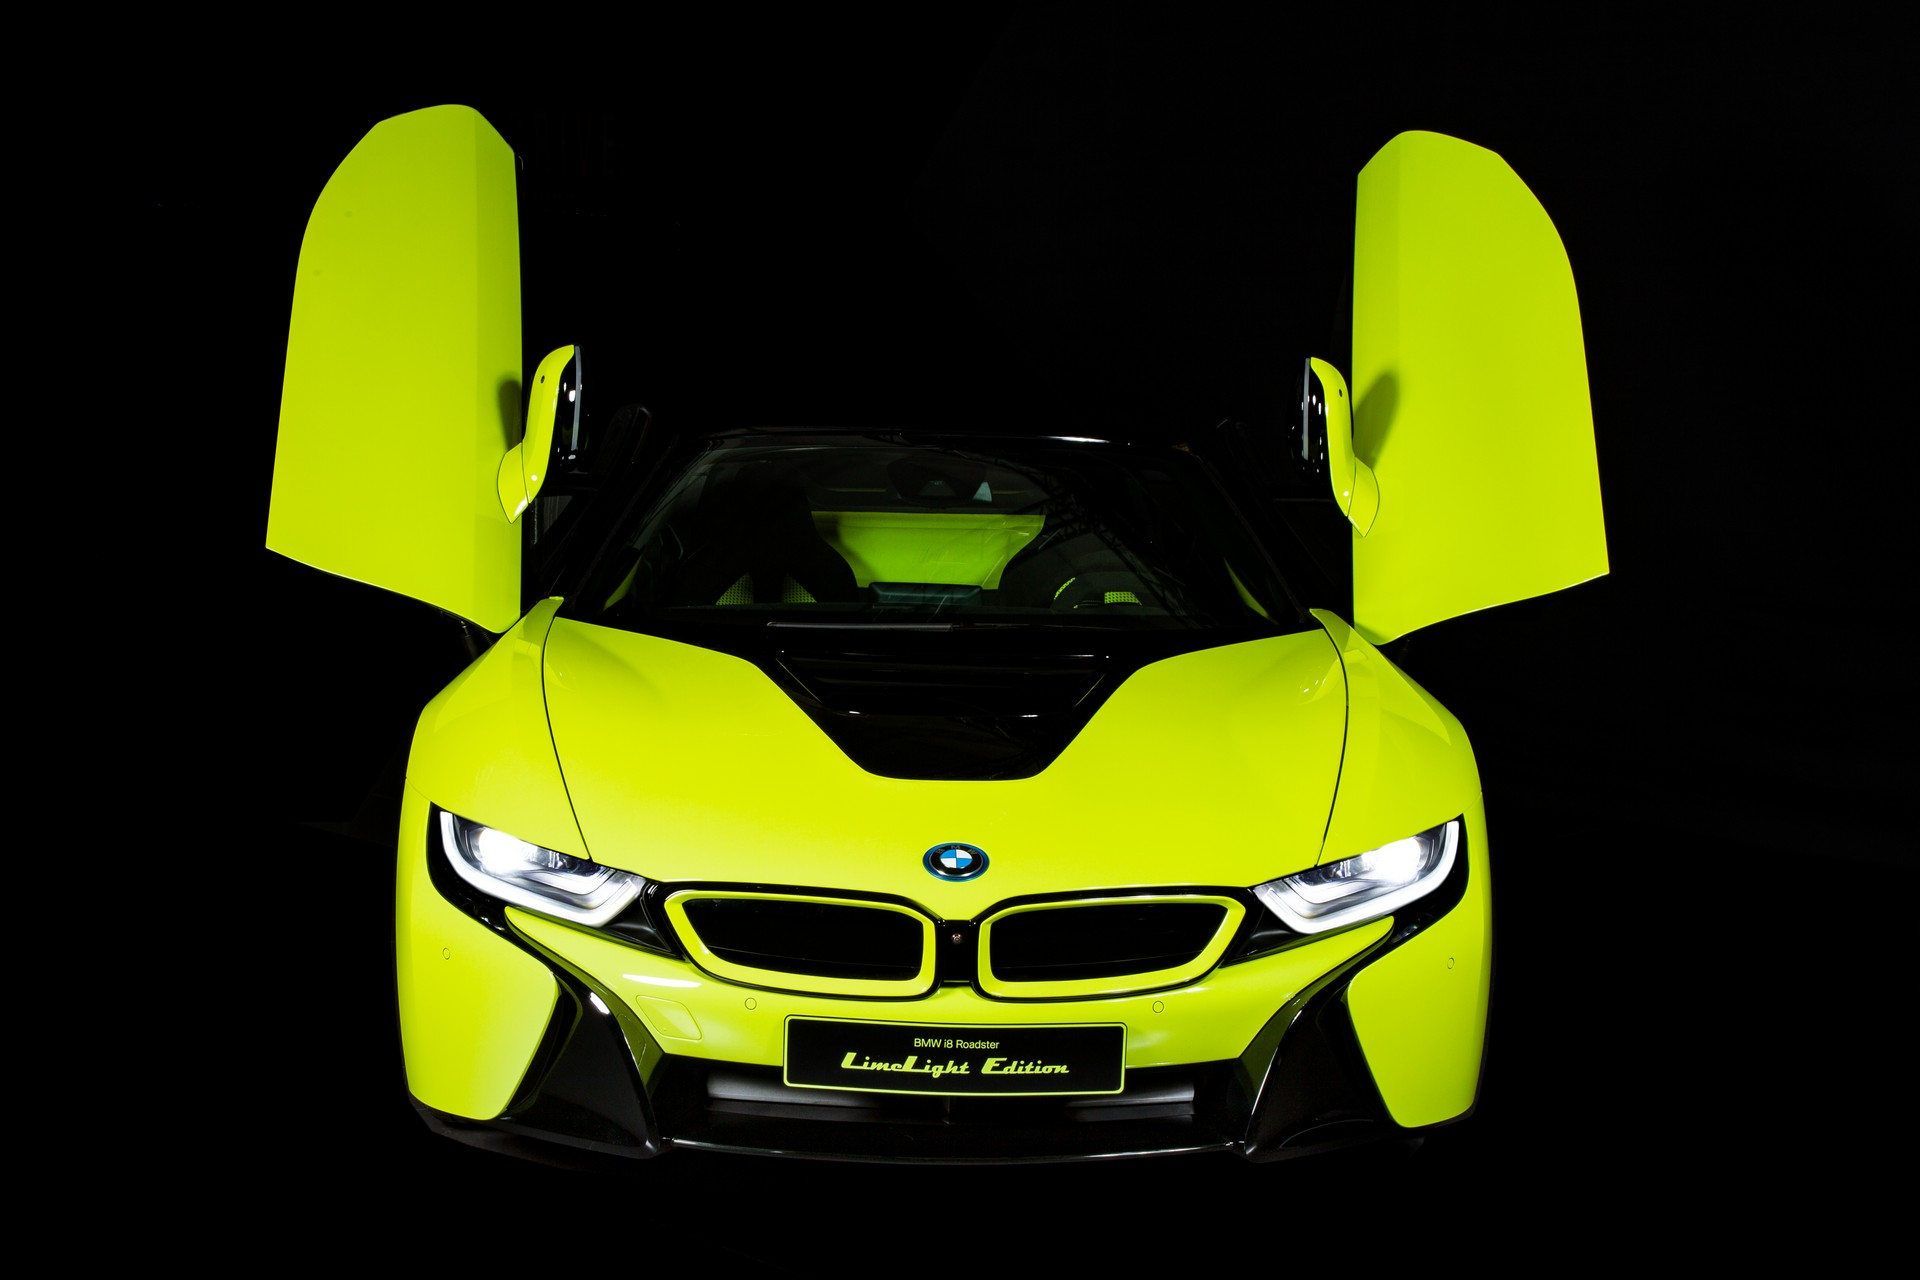 BMW-i8-Roadster-LimeLight-Edition-4